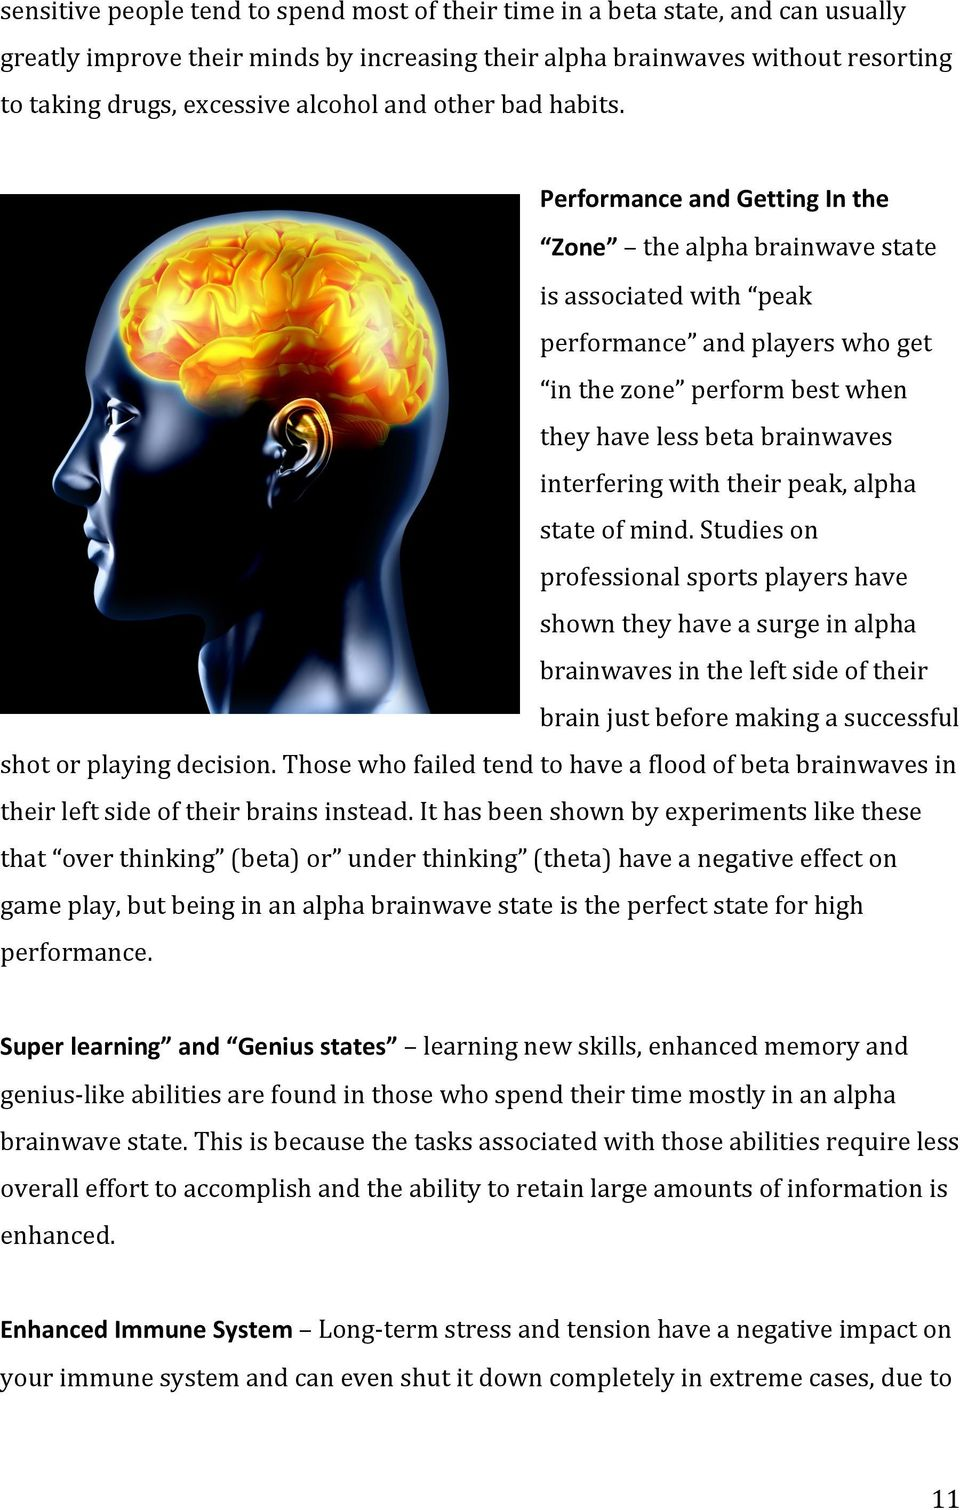 Performance and Getting In the Zone the alpha brainwave state is associated with peak performance and players who get in the zone perform best when they have less beta brainwaves interfering with